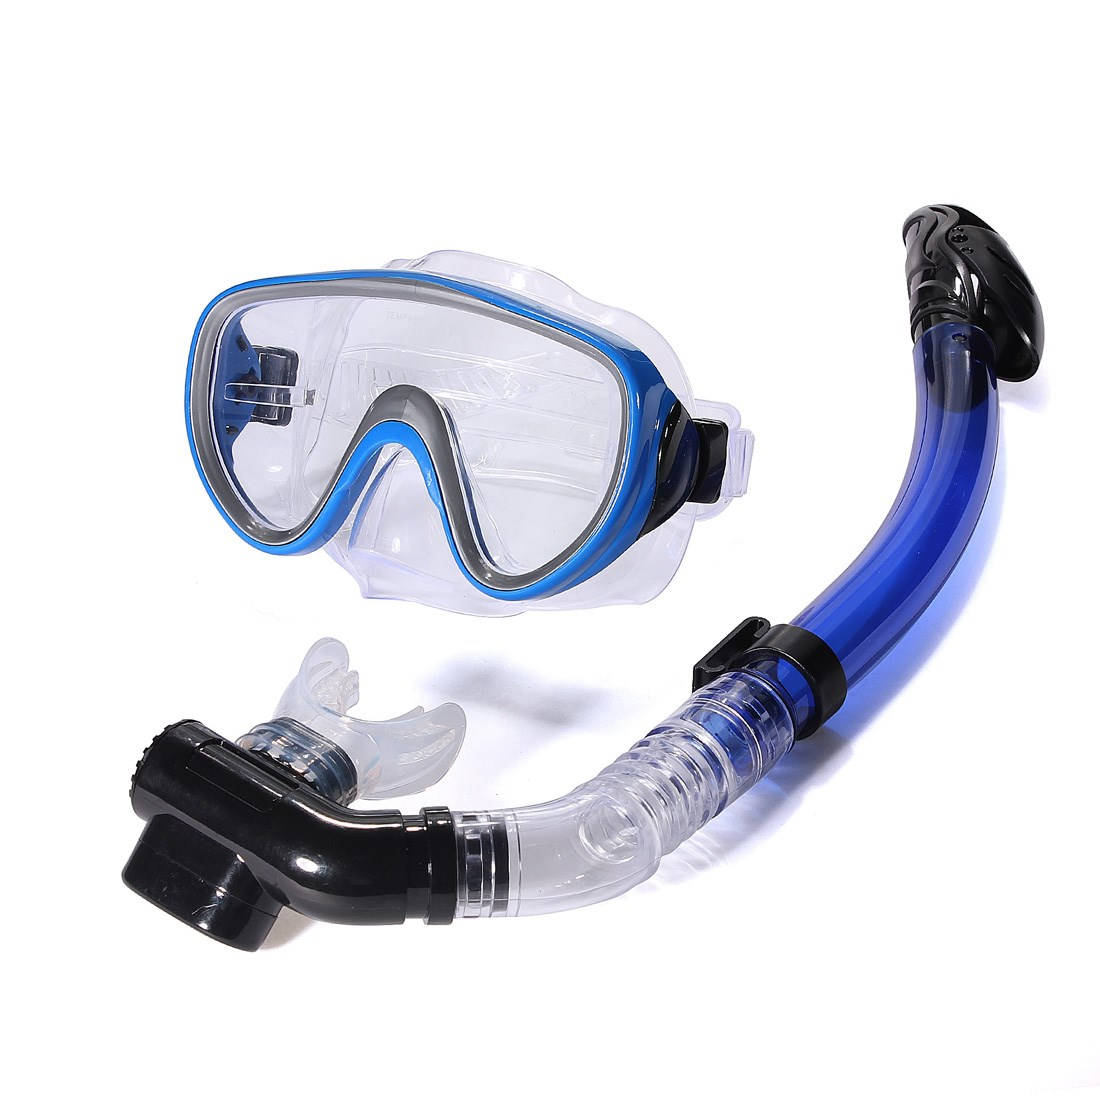 Hot Sale PVC Snorkeling Diving Swimming Anti-Fog Goggles Mask Glasses Dry Snorkel Set Dive Diving Glasses Snork(China (Mainland))